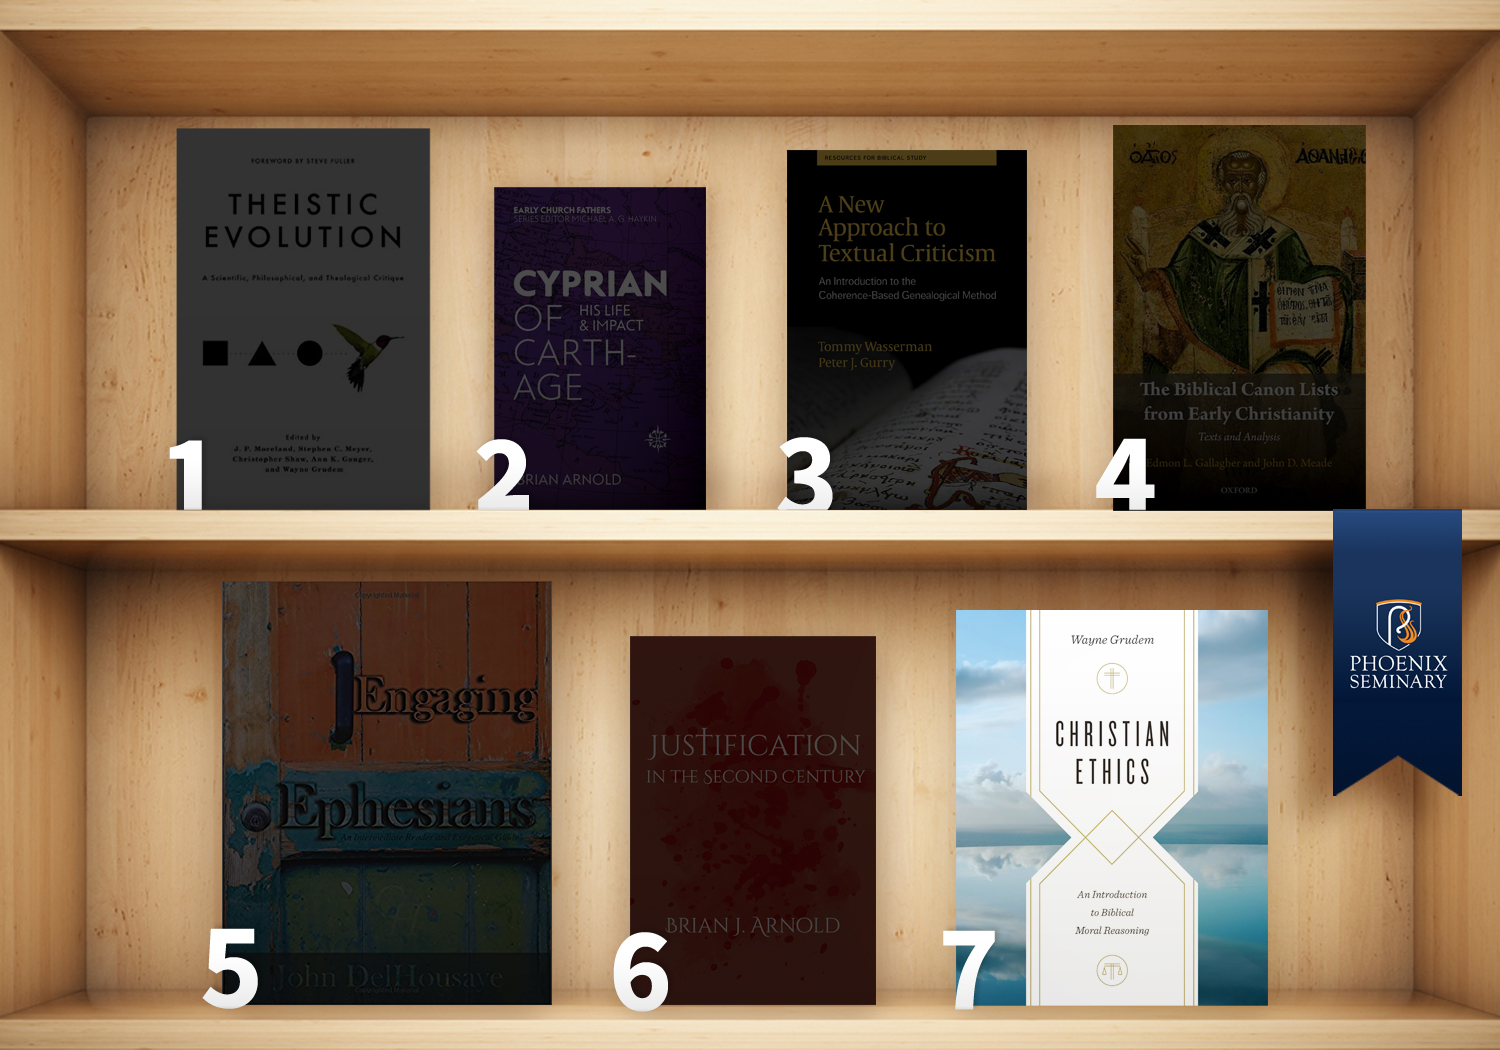 Christian Ethics on the shelf